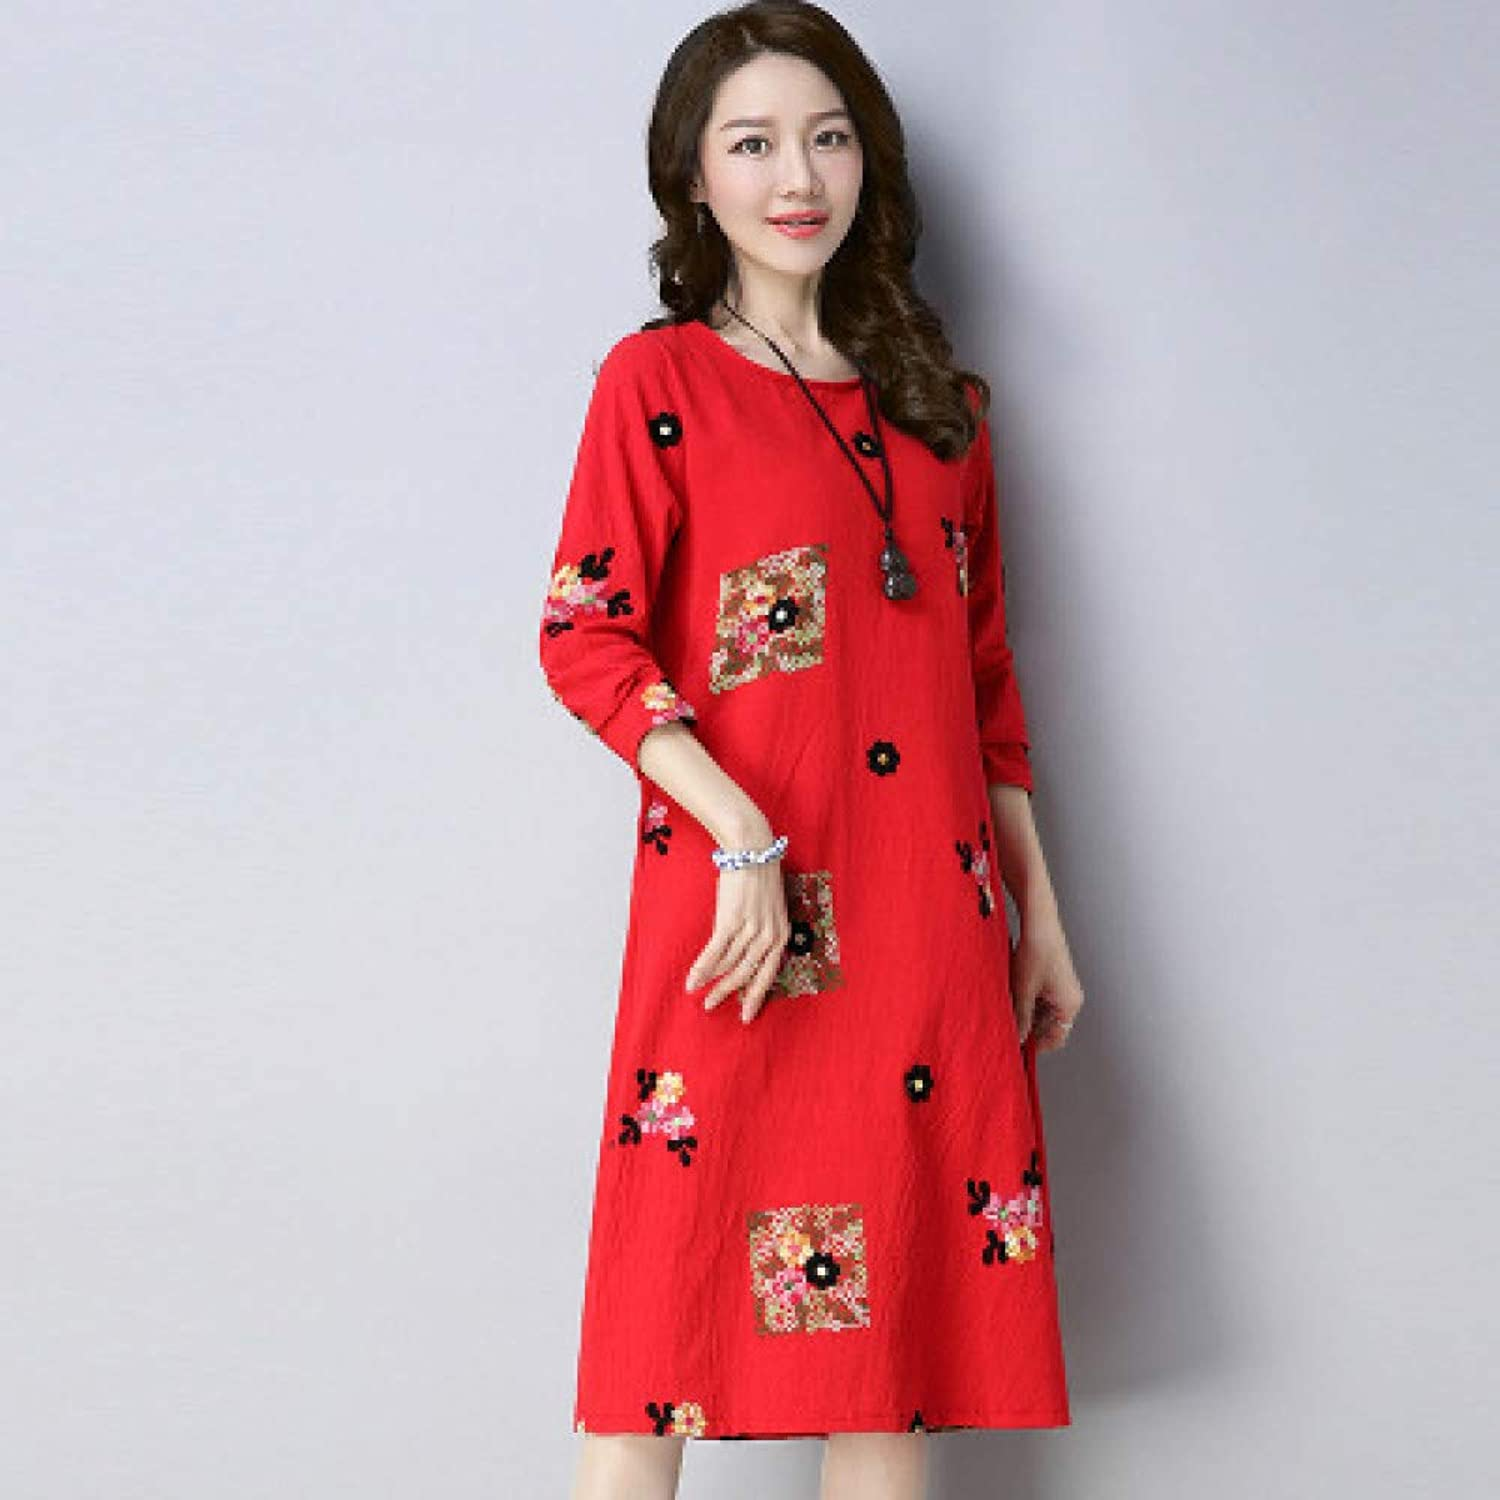 Cxlyq Dresses Women's Long Sleeves Dress Slim Long Section Embroidered A Word Skirt Women's Clothing